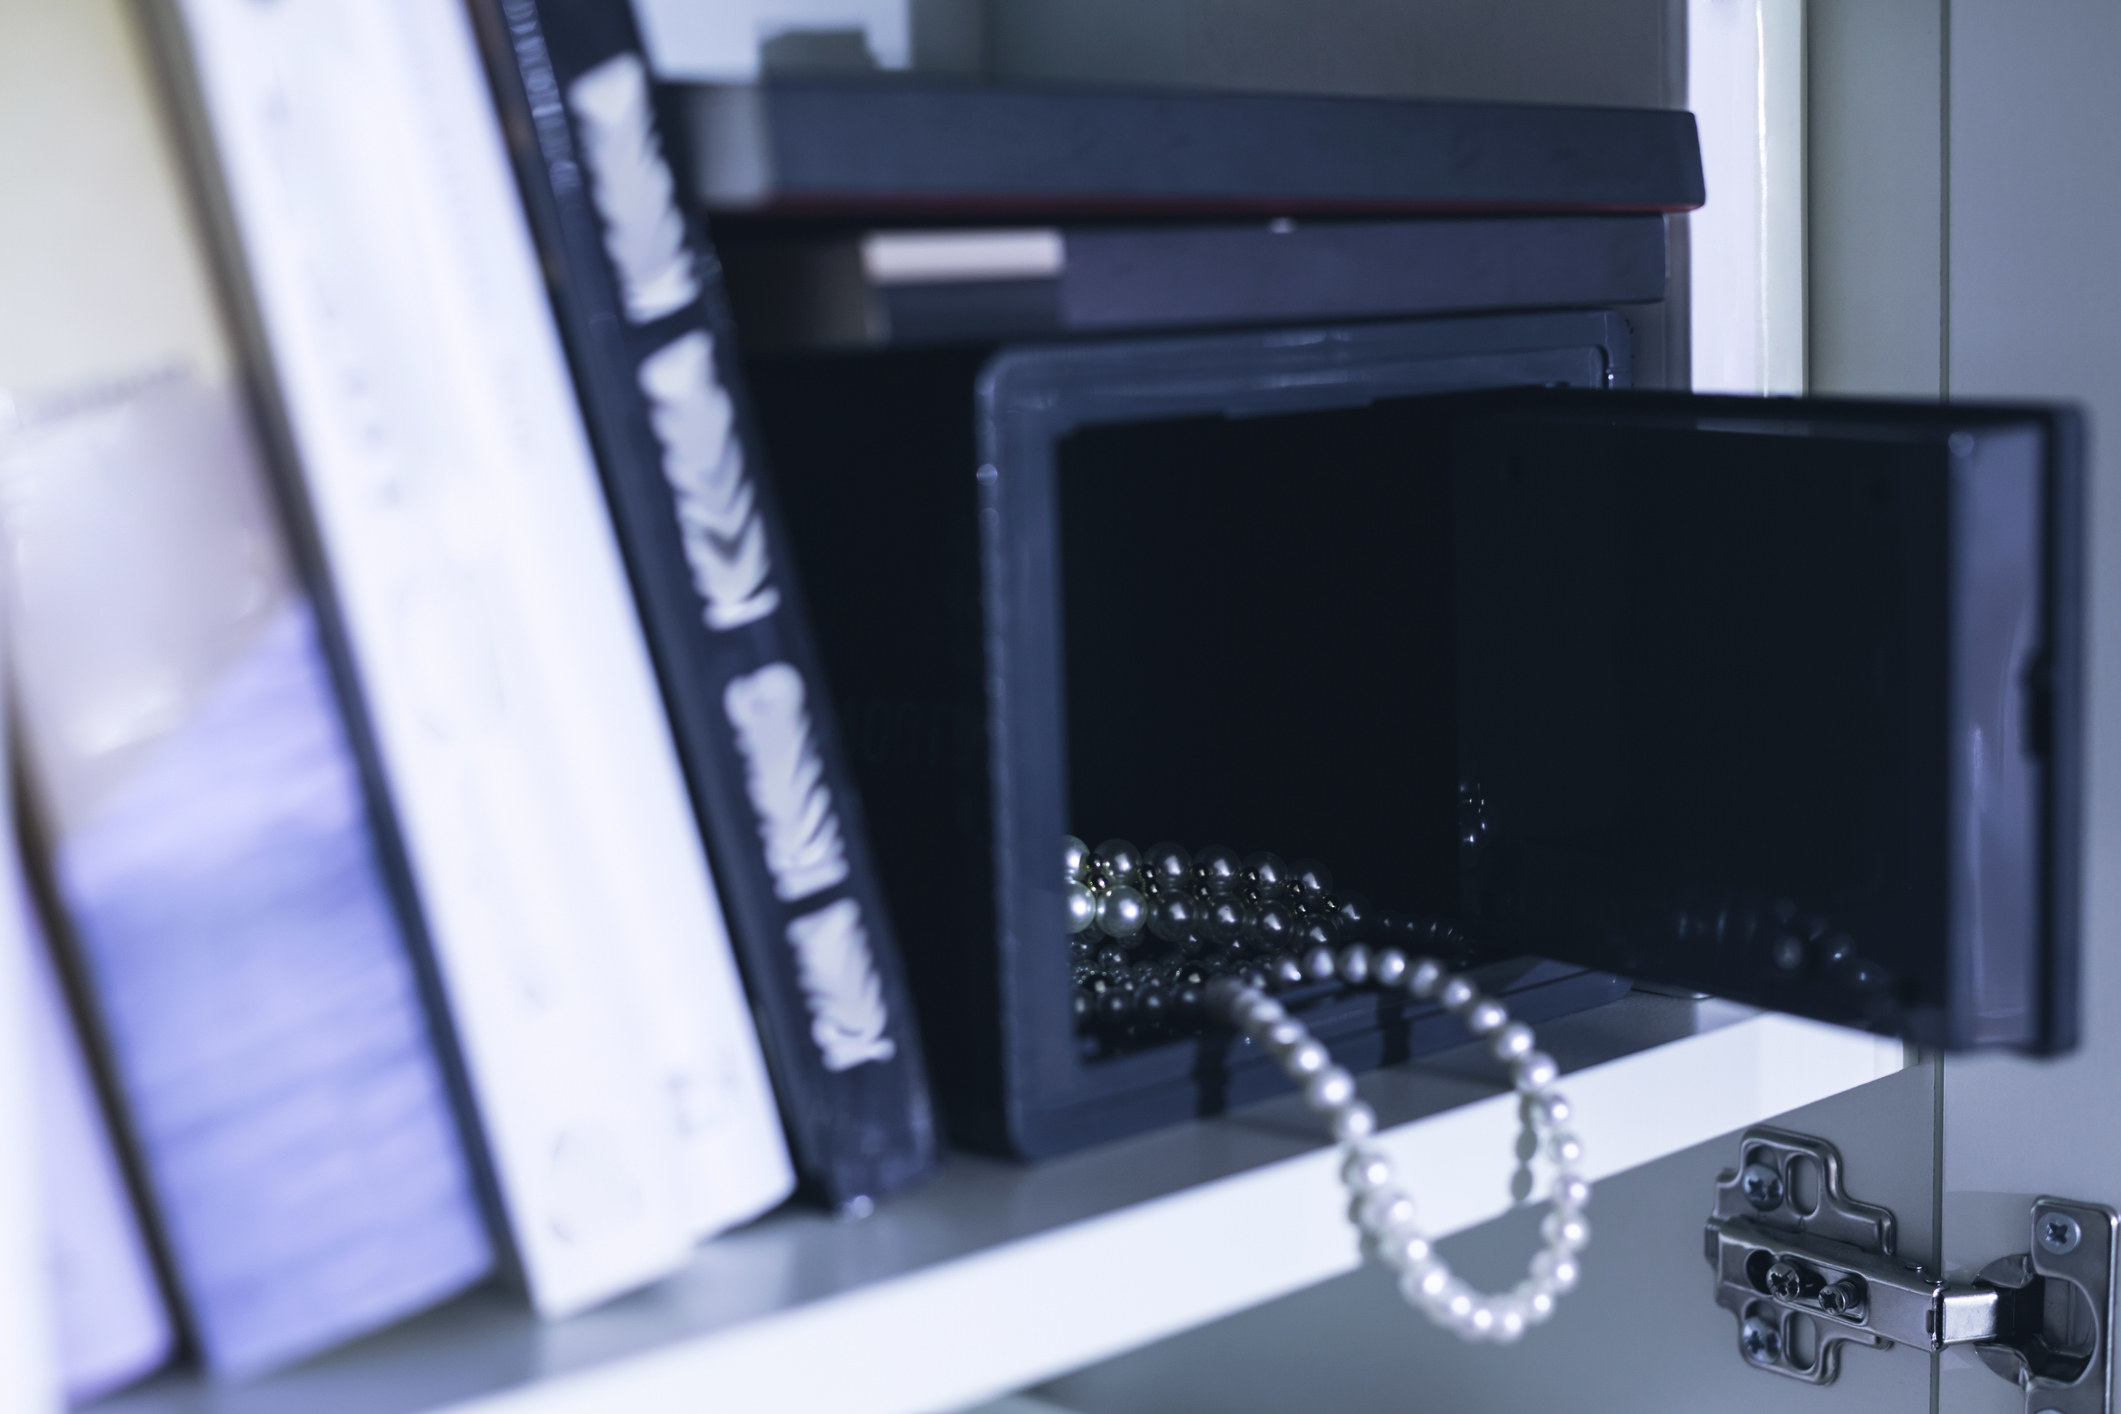 Image of open domestic safe on shelf with expensive jewelry falling out